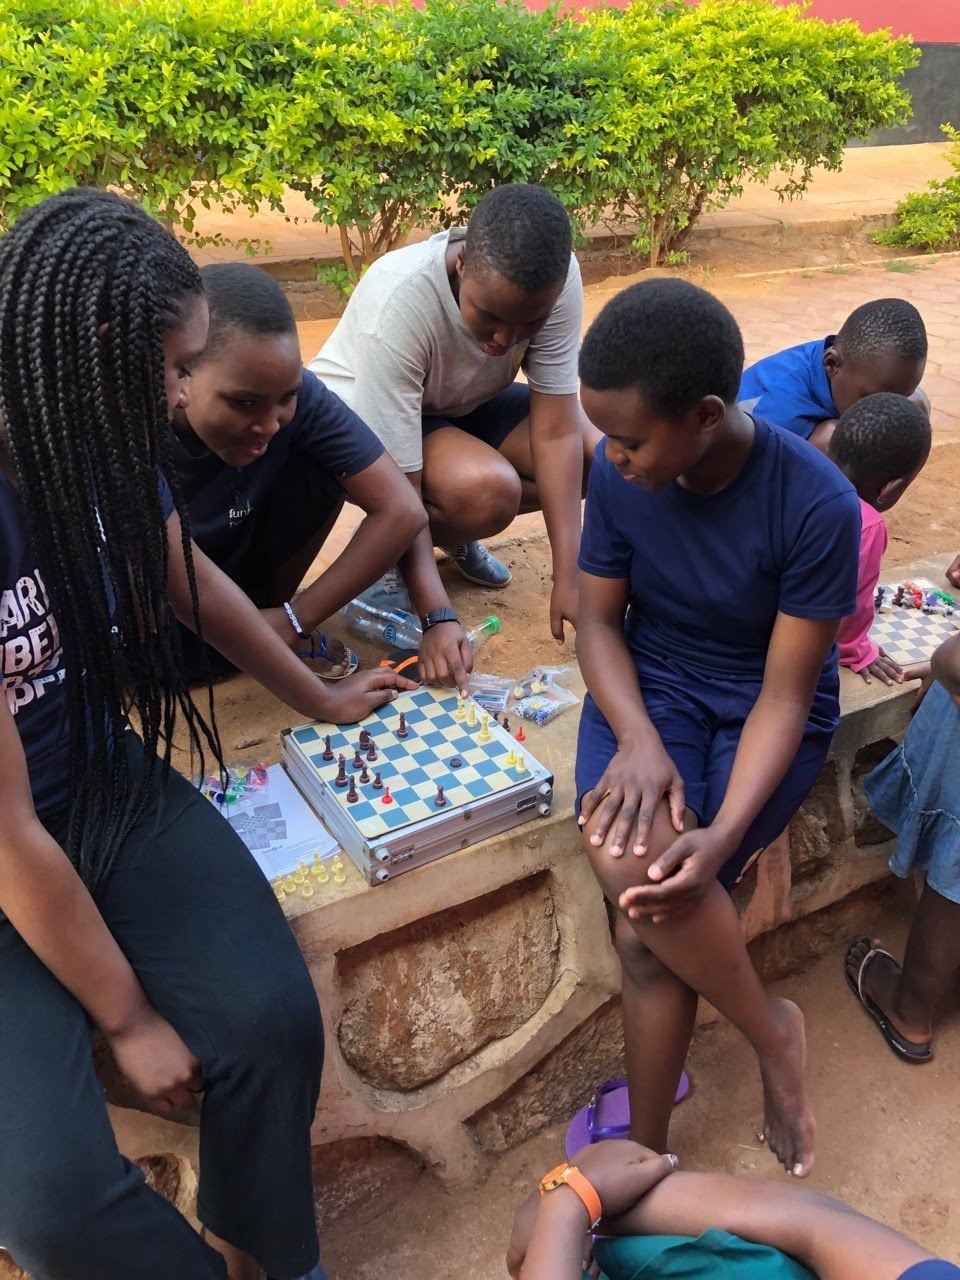 Learning to play chess with the PBM group